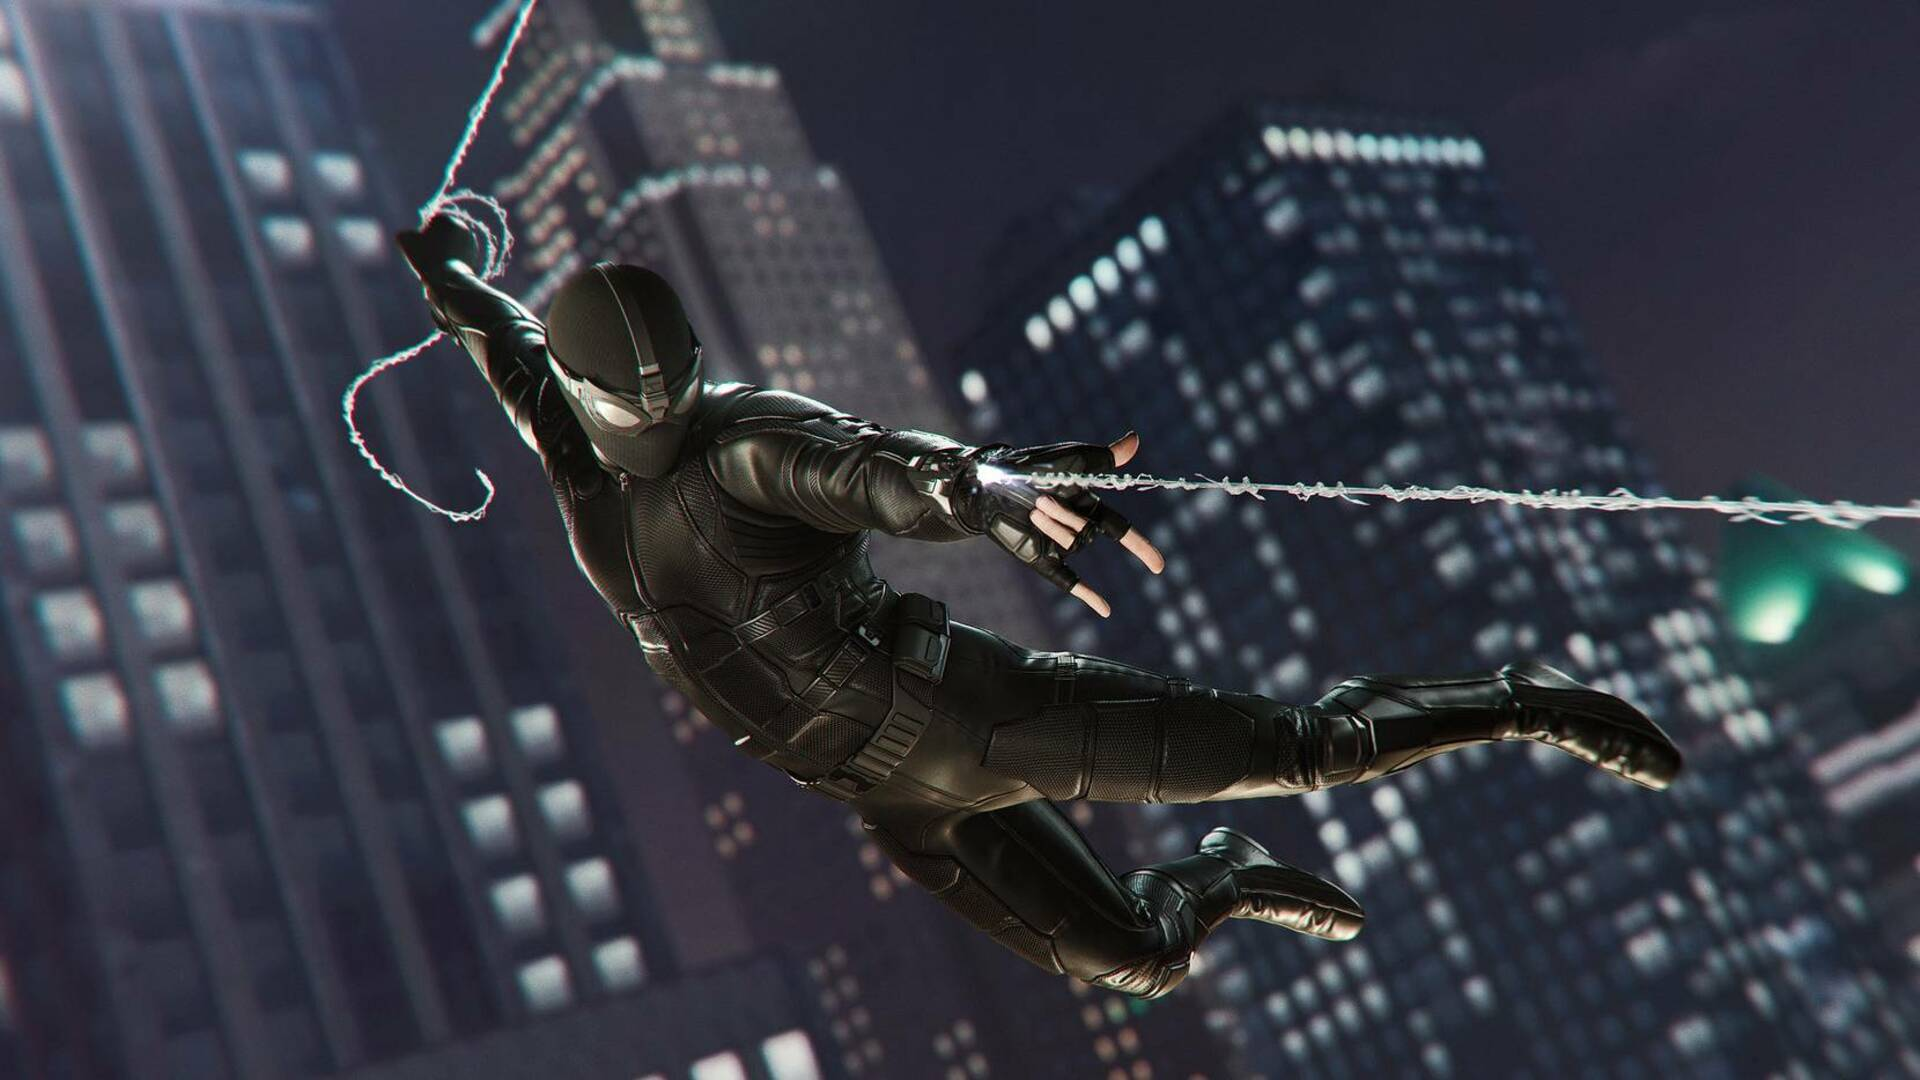 Spider-Man PS4 Gets Two Far From Home Suits Today